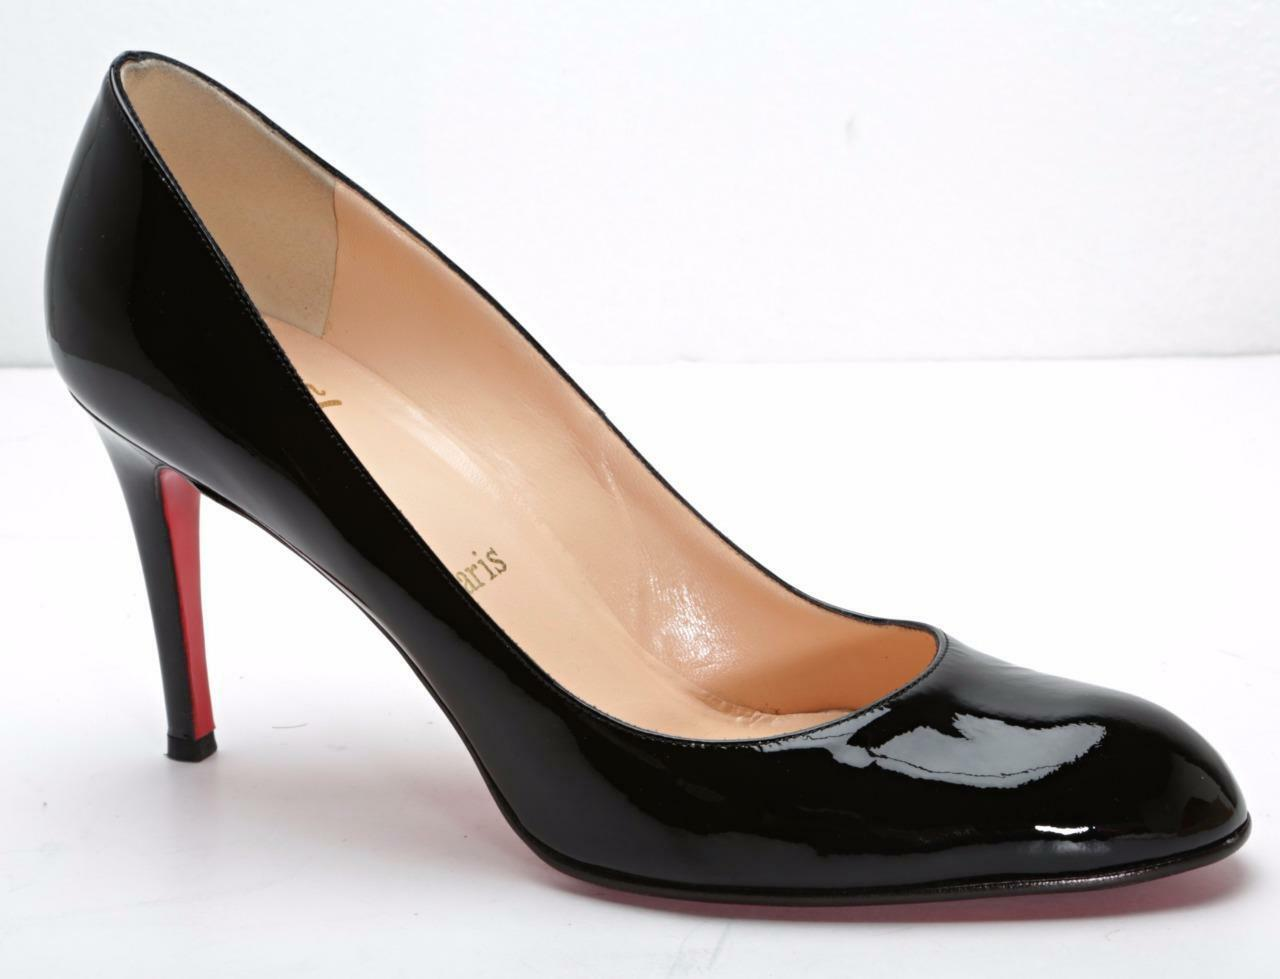 CHRISTIAN LOUBOUTIN Womens Black Patent-Leather Round-Toe Classic Pumps 9-39 NEW